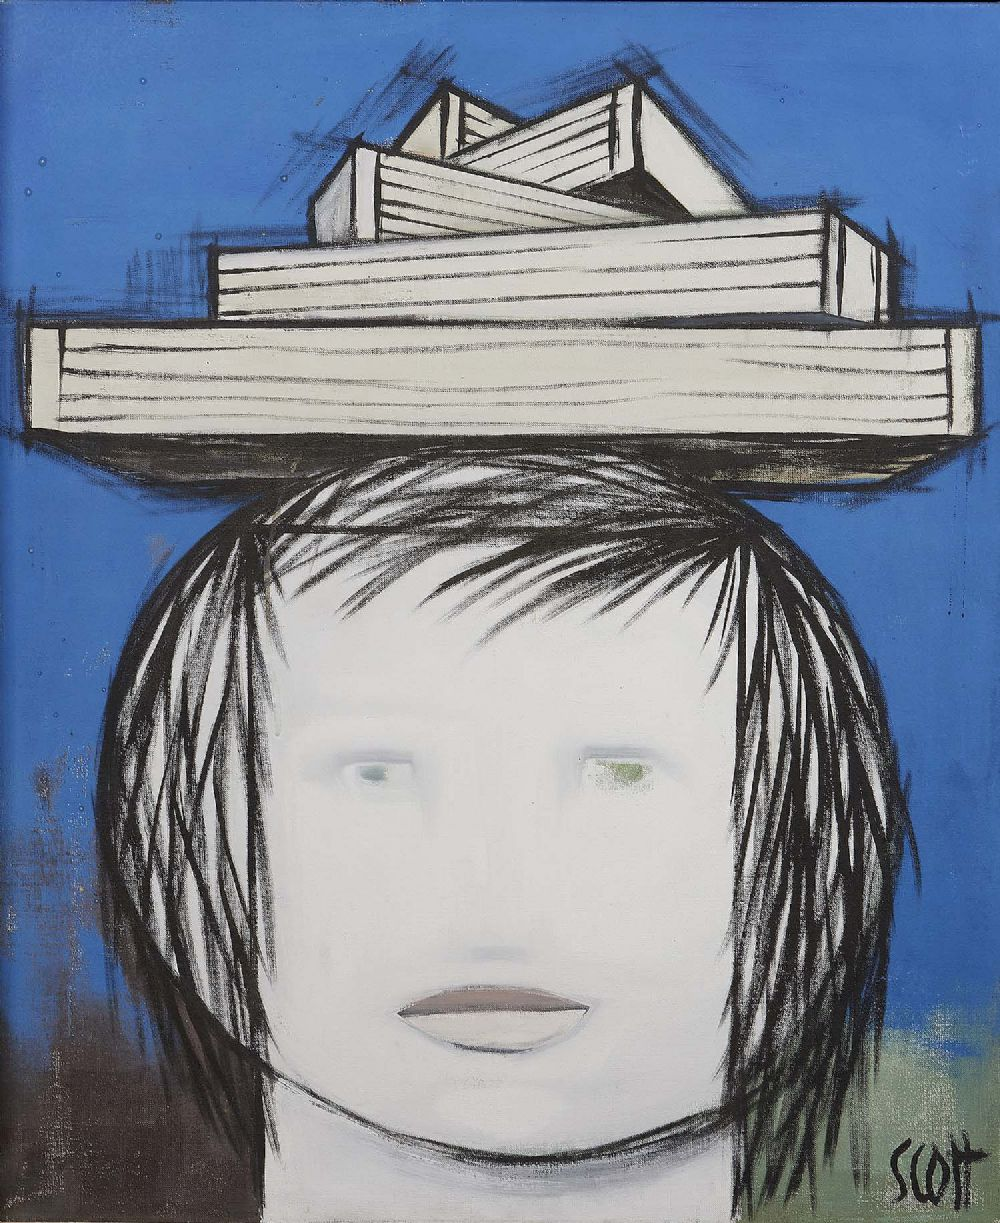 GIRL CARRYING EMPTY BOXES, 1958 by Patrick Scott HRHA 1921